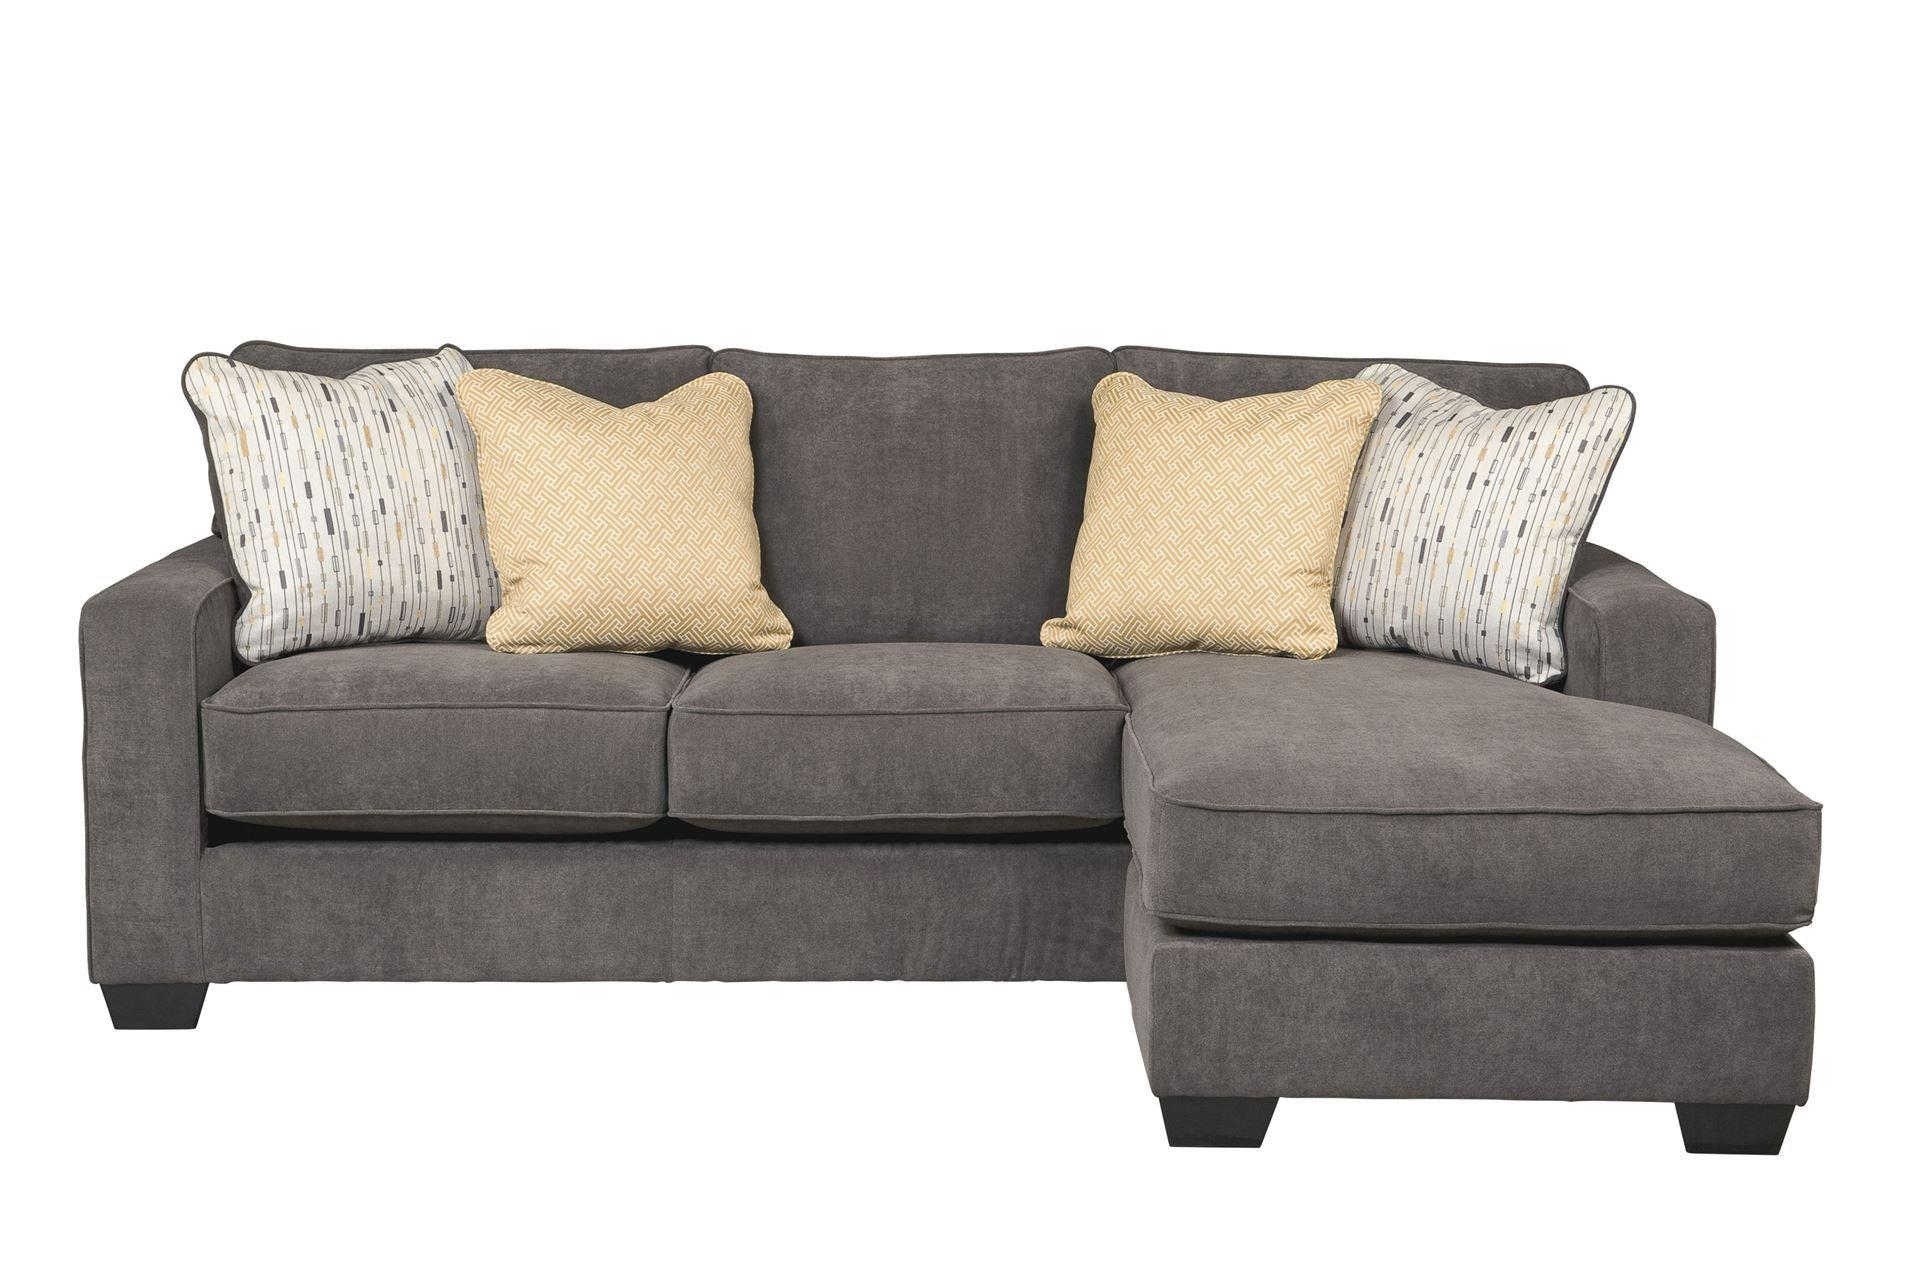 vilasund cover sofa bed with chaise longue ashley queen size sleeper 20 top sofas | ideas